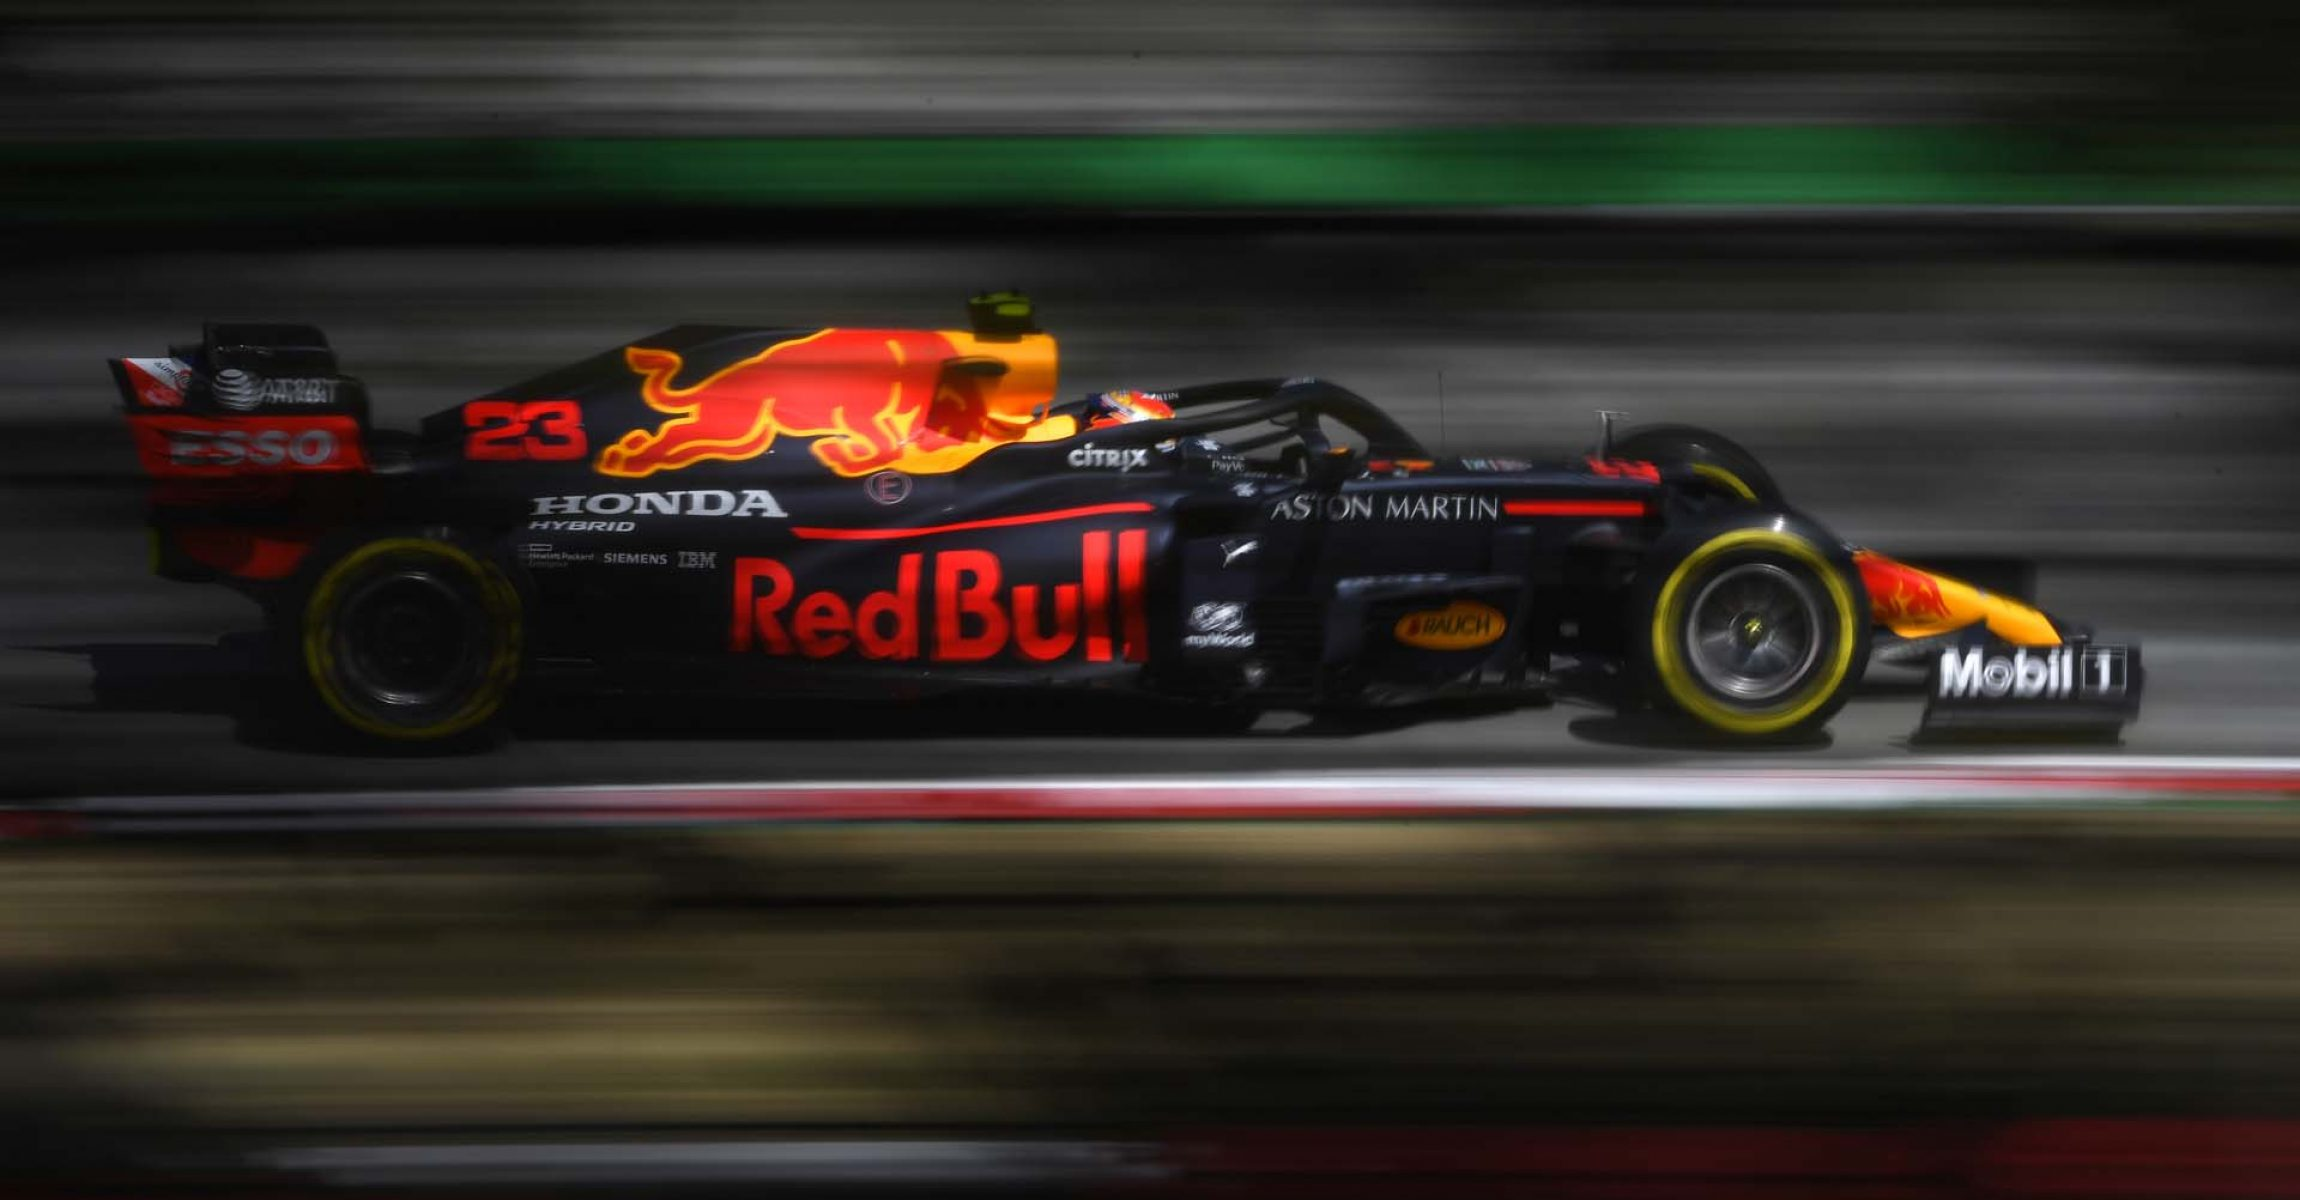 BARCELONA, SPAIN - AUGUST 14: Alexander Albon of Thailand driving the (23) Aston Martin Red Bull Racing RB16 on track during practice for the F1 Grand Prix of Spain at Circuit de Barcelona-Catalunya on August 14, 2020 in Barcelona, Spain. (Photo by Rudy Carezzevoli/Getty Images)